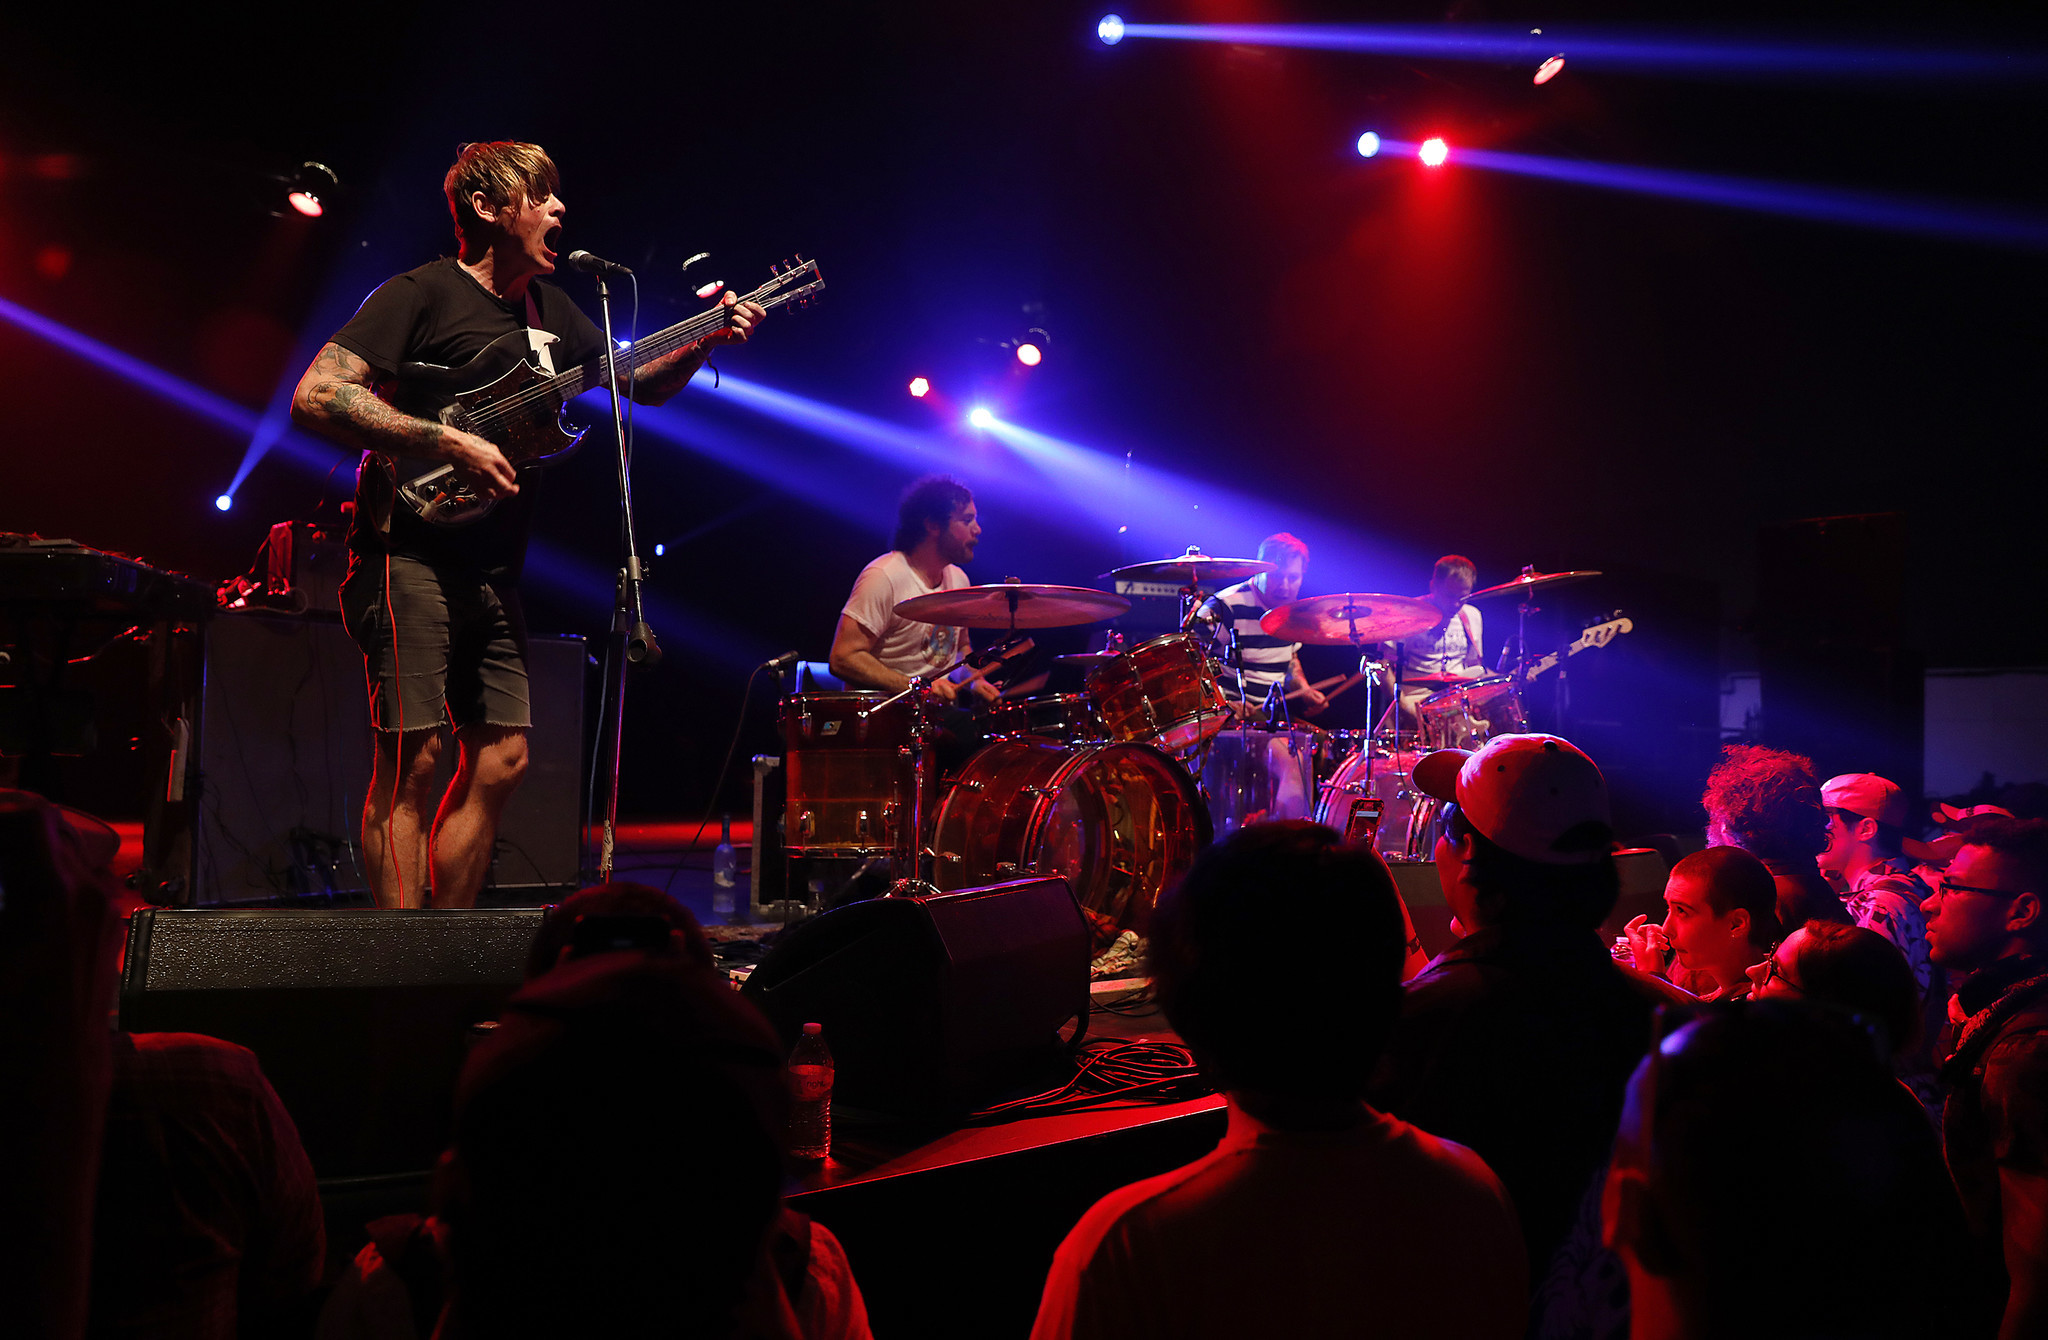 INDIO-CA-APRIL 21, 2018: Oh Sees perform at Coachella Weekend 2 on Saturday, April 21, 2018. (Christ